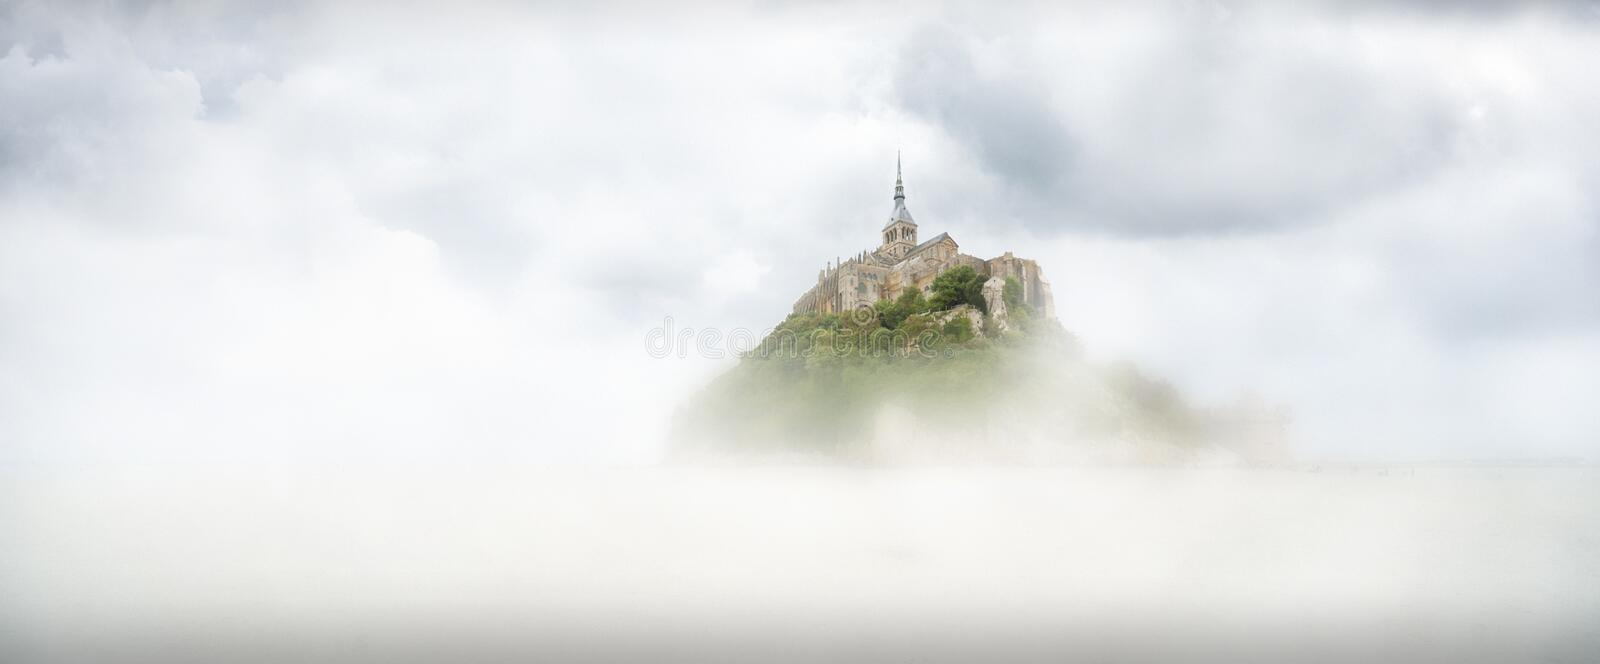 Panoramic view of the famous tidal island of Le Mont Saint-Michel on a fog day, Normandy, northern France stock image